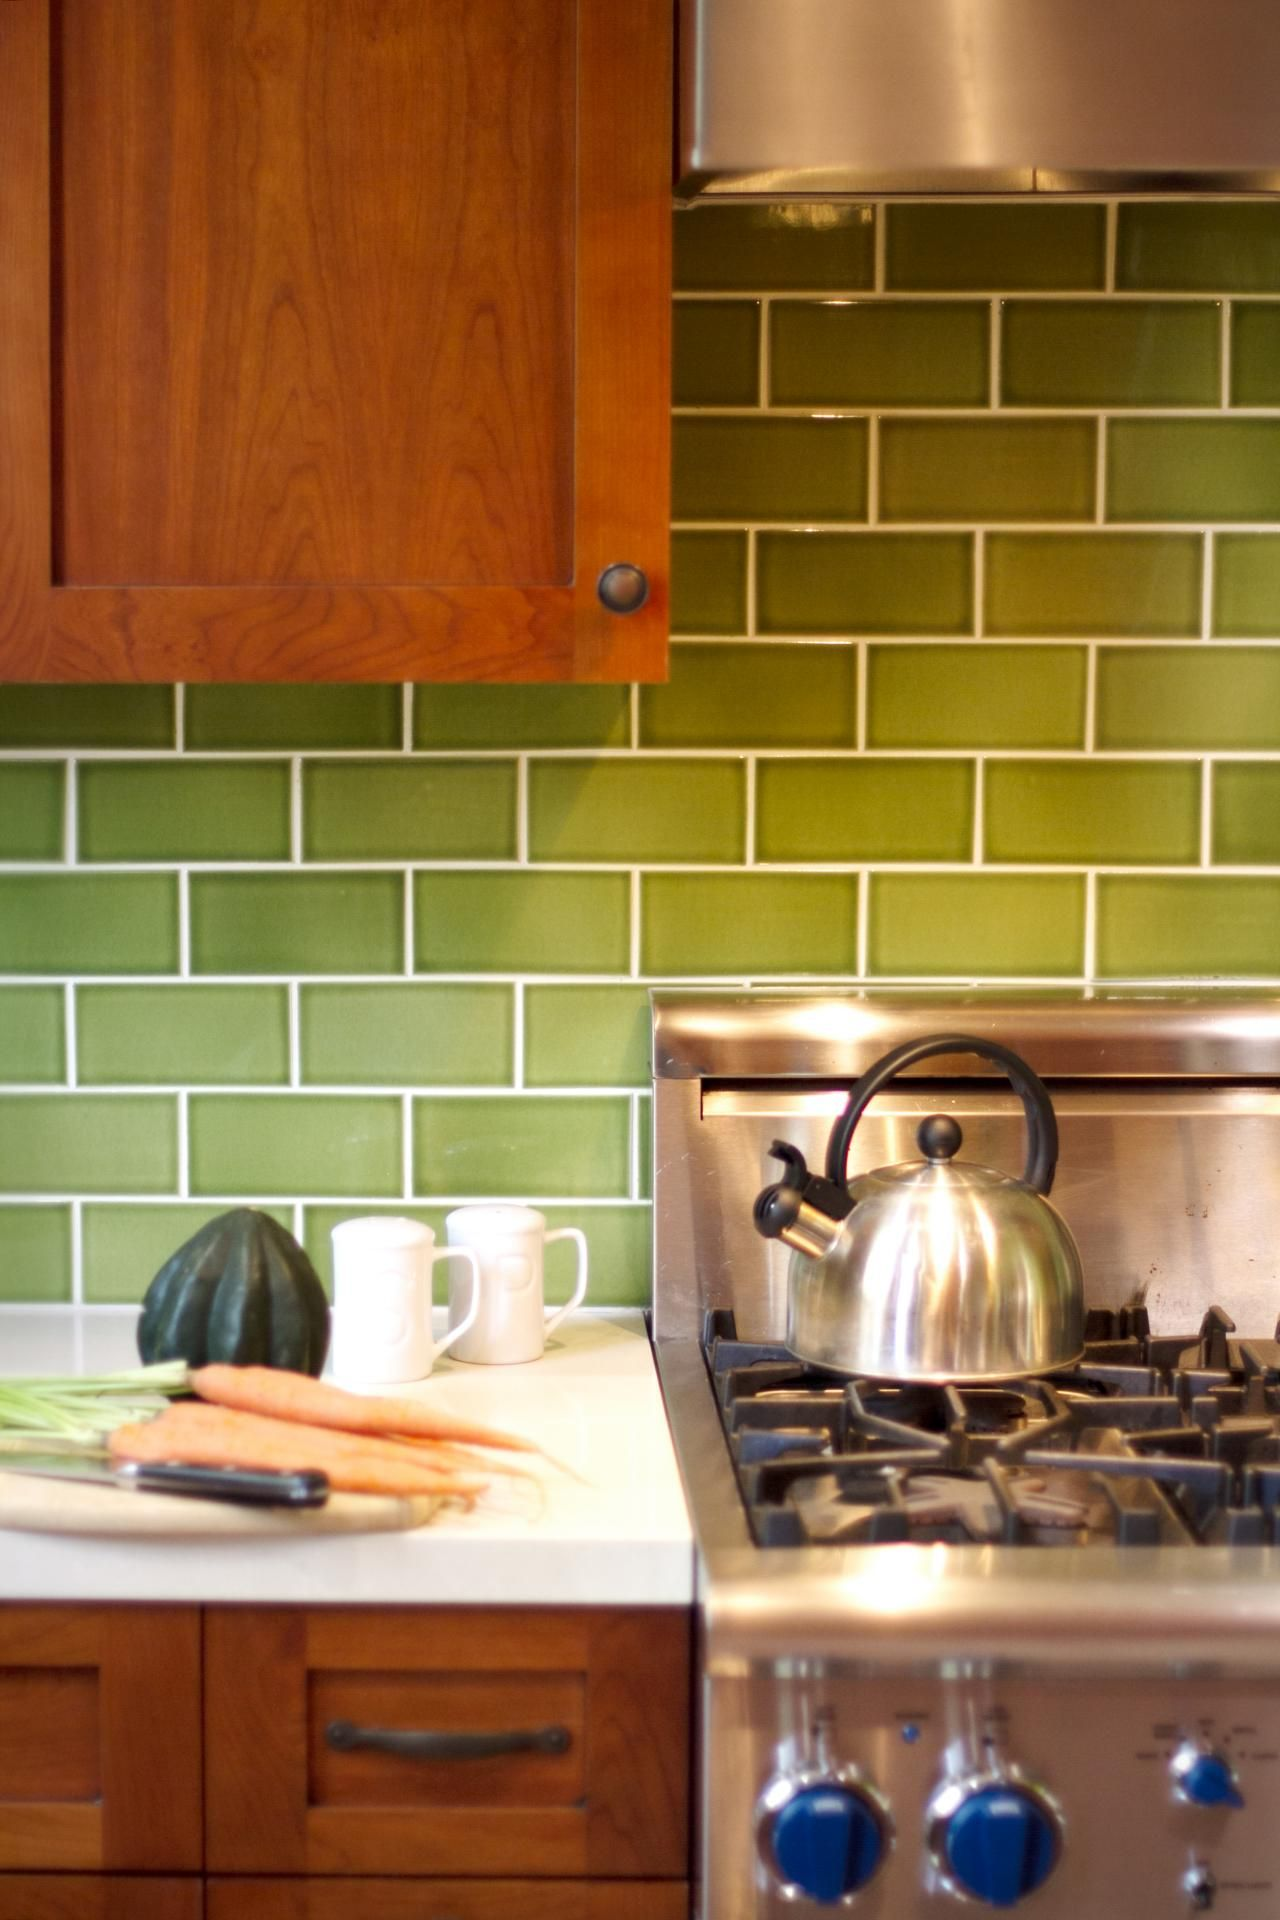 green subway tile kitchen backsplash stainless steel appliances green tiles and rich wood cabinets give this kitchen a chic ur 3788